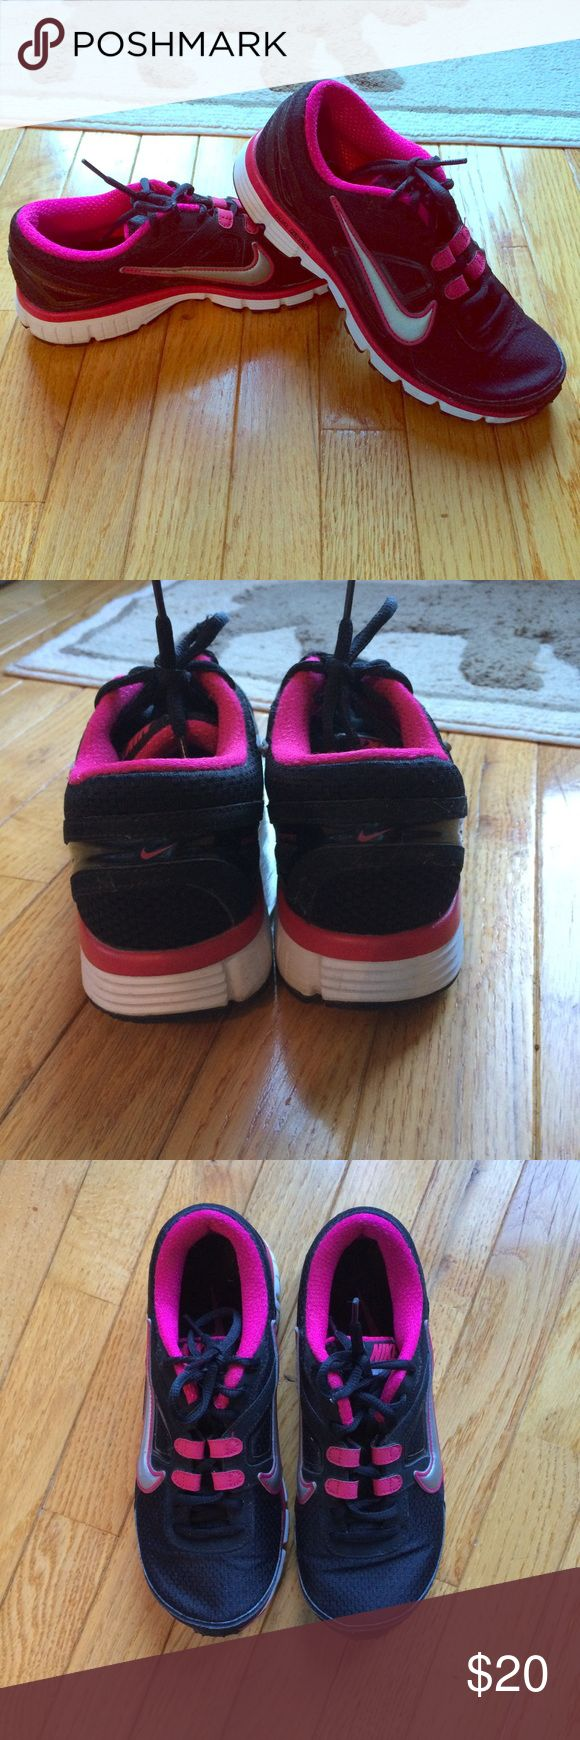 Nike dual fusion running shoes Nike dual fusion running shoes. Size 8. Black and pink. Good used condition. Smoke free home. Nike Shoes Sneakers